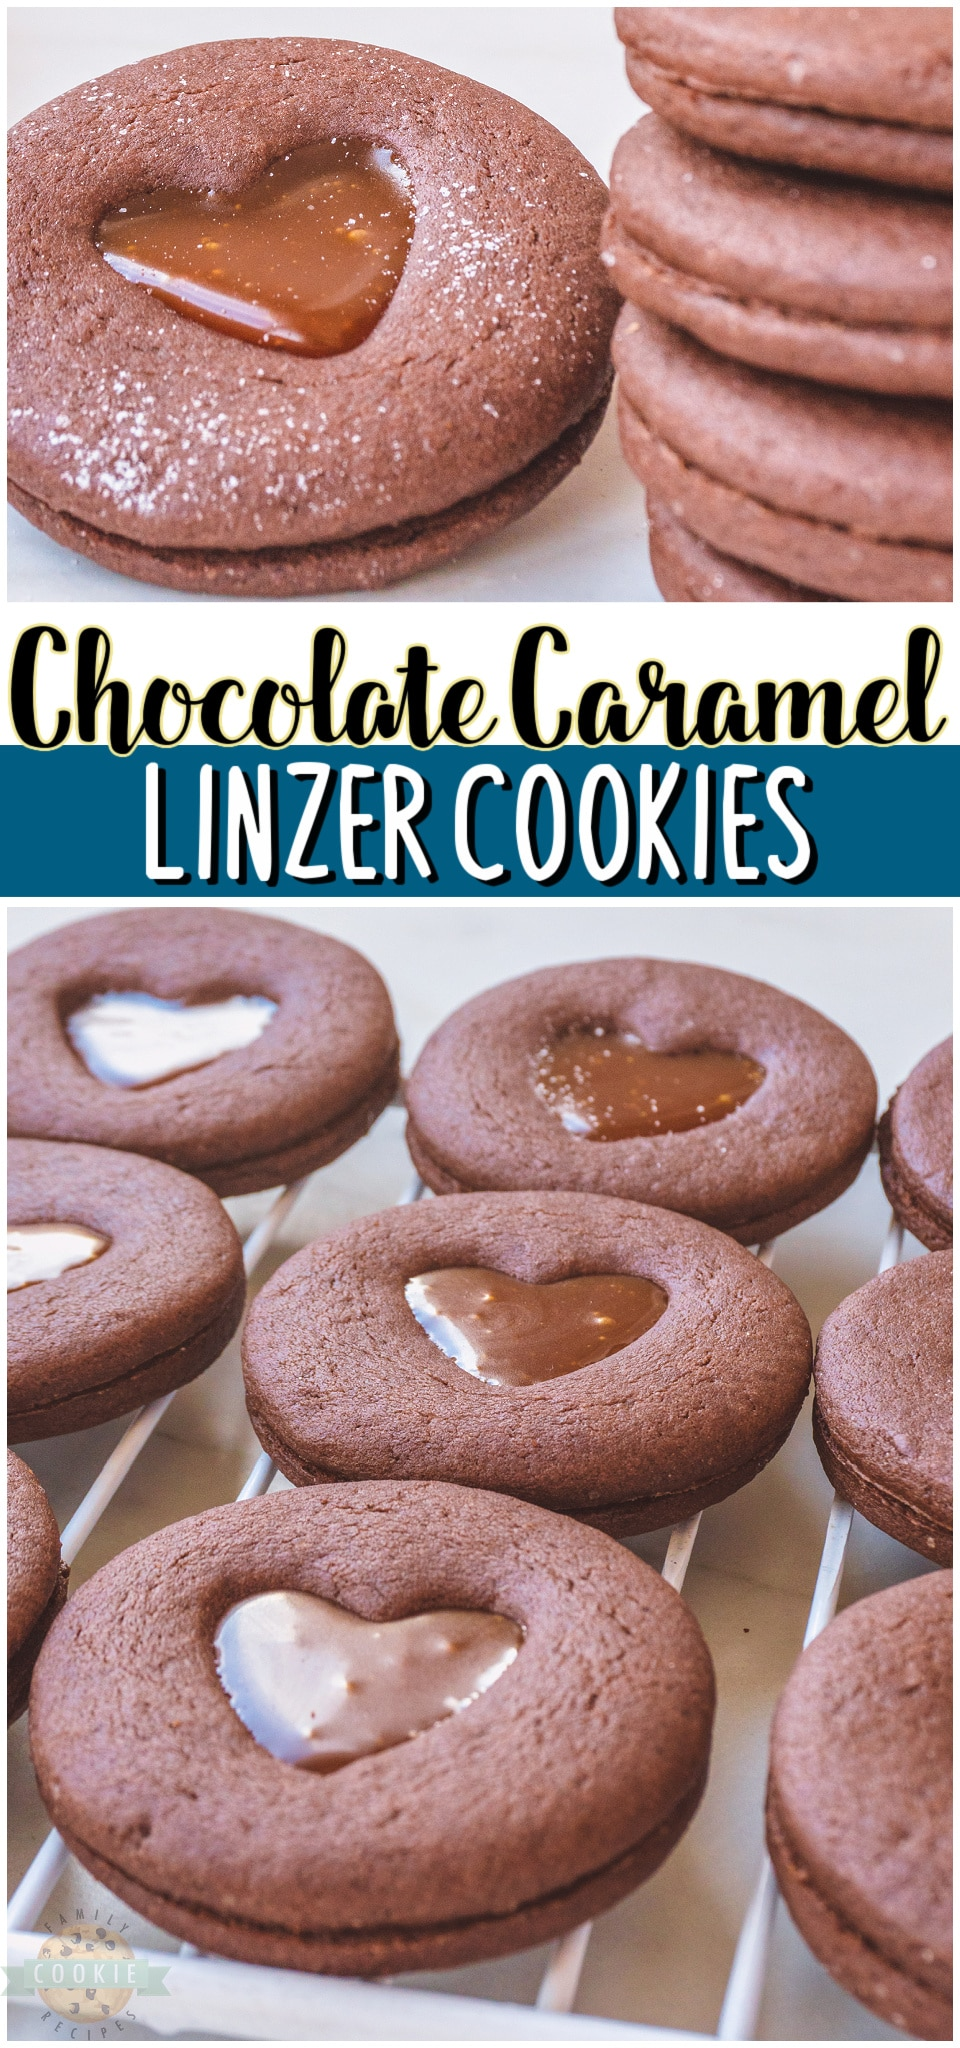 Chocolate Caramel Linzer Cookies are sandwich cookies that pack a lot of flavor into every gooey bite. With caramel filled chocolate cookies, every bite is going to be delicious but making these cookies is half of the fun! #cookies #Linzer #chocolate #caramel #baking #dessert #easyrecipe from FAMILY COOKIE RECIPES via @buttergirls